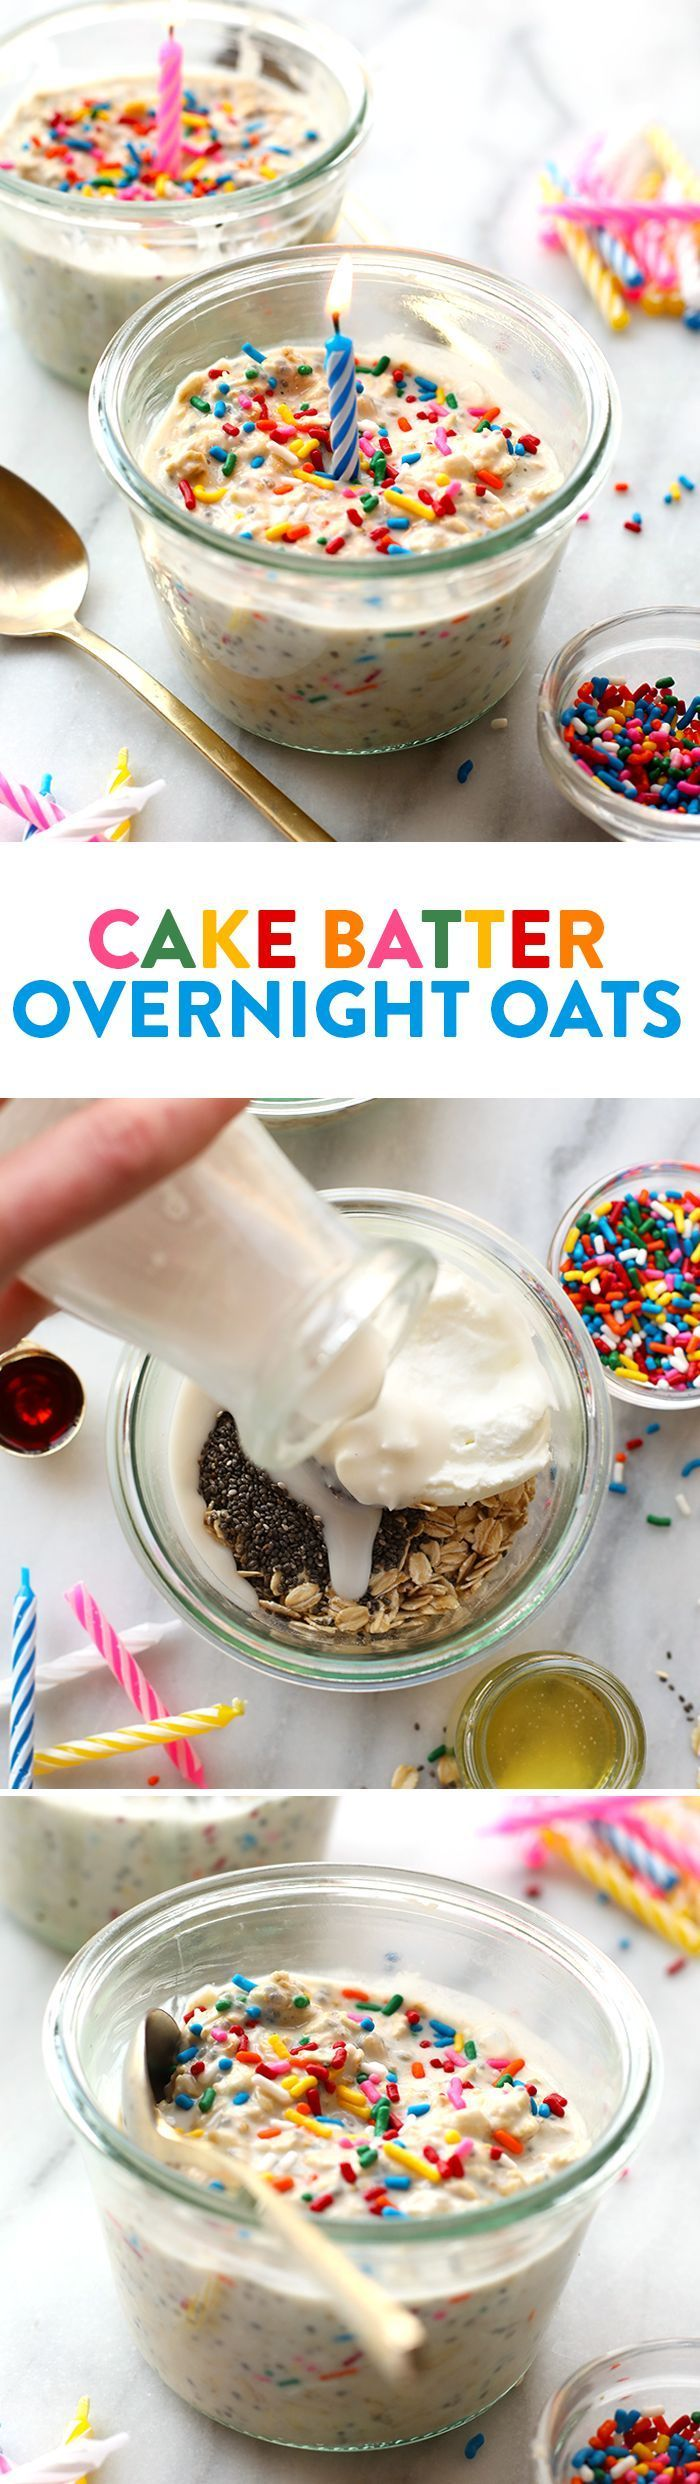 Celebrate your birthday the right way and start off with these HEALTHY Birthday Cake Batter Overnight Oats. They're prepped in less than 5 minutes and packed with healthy ingredients.